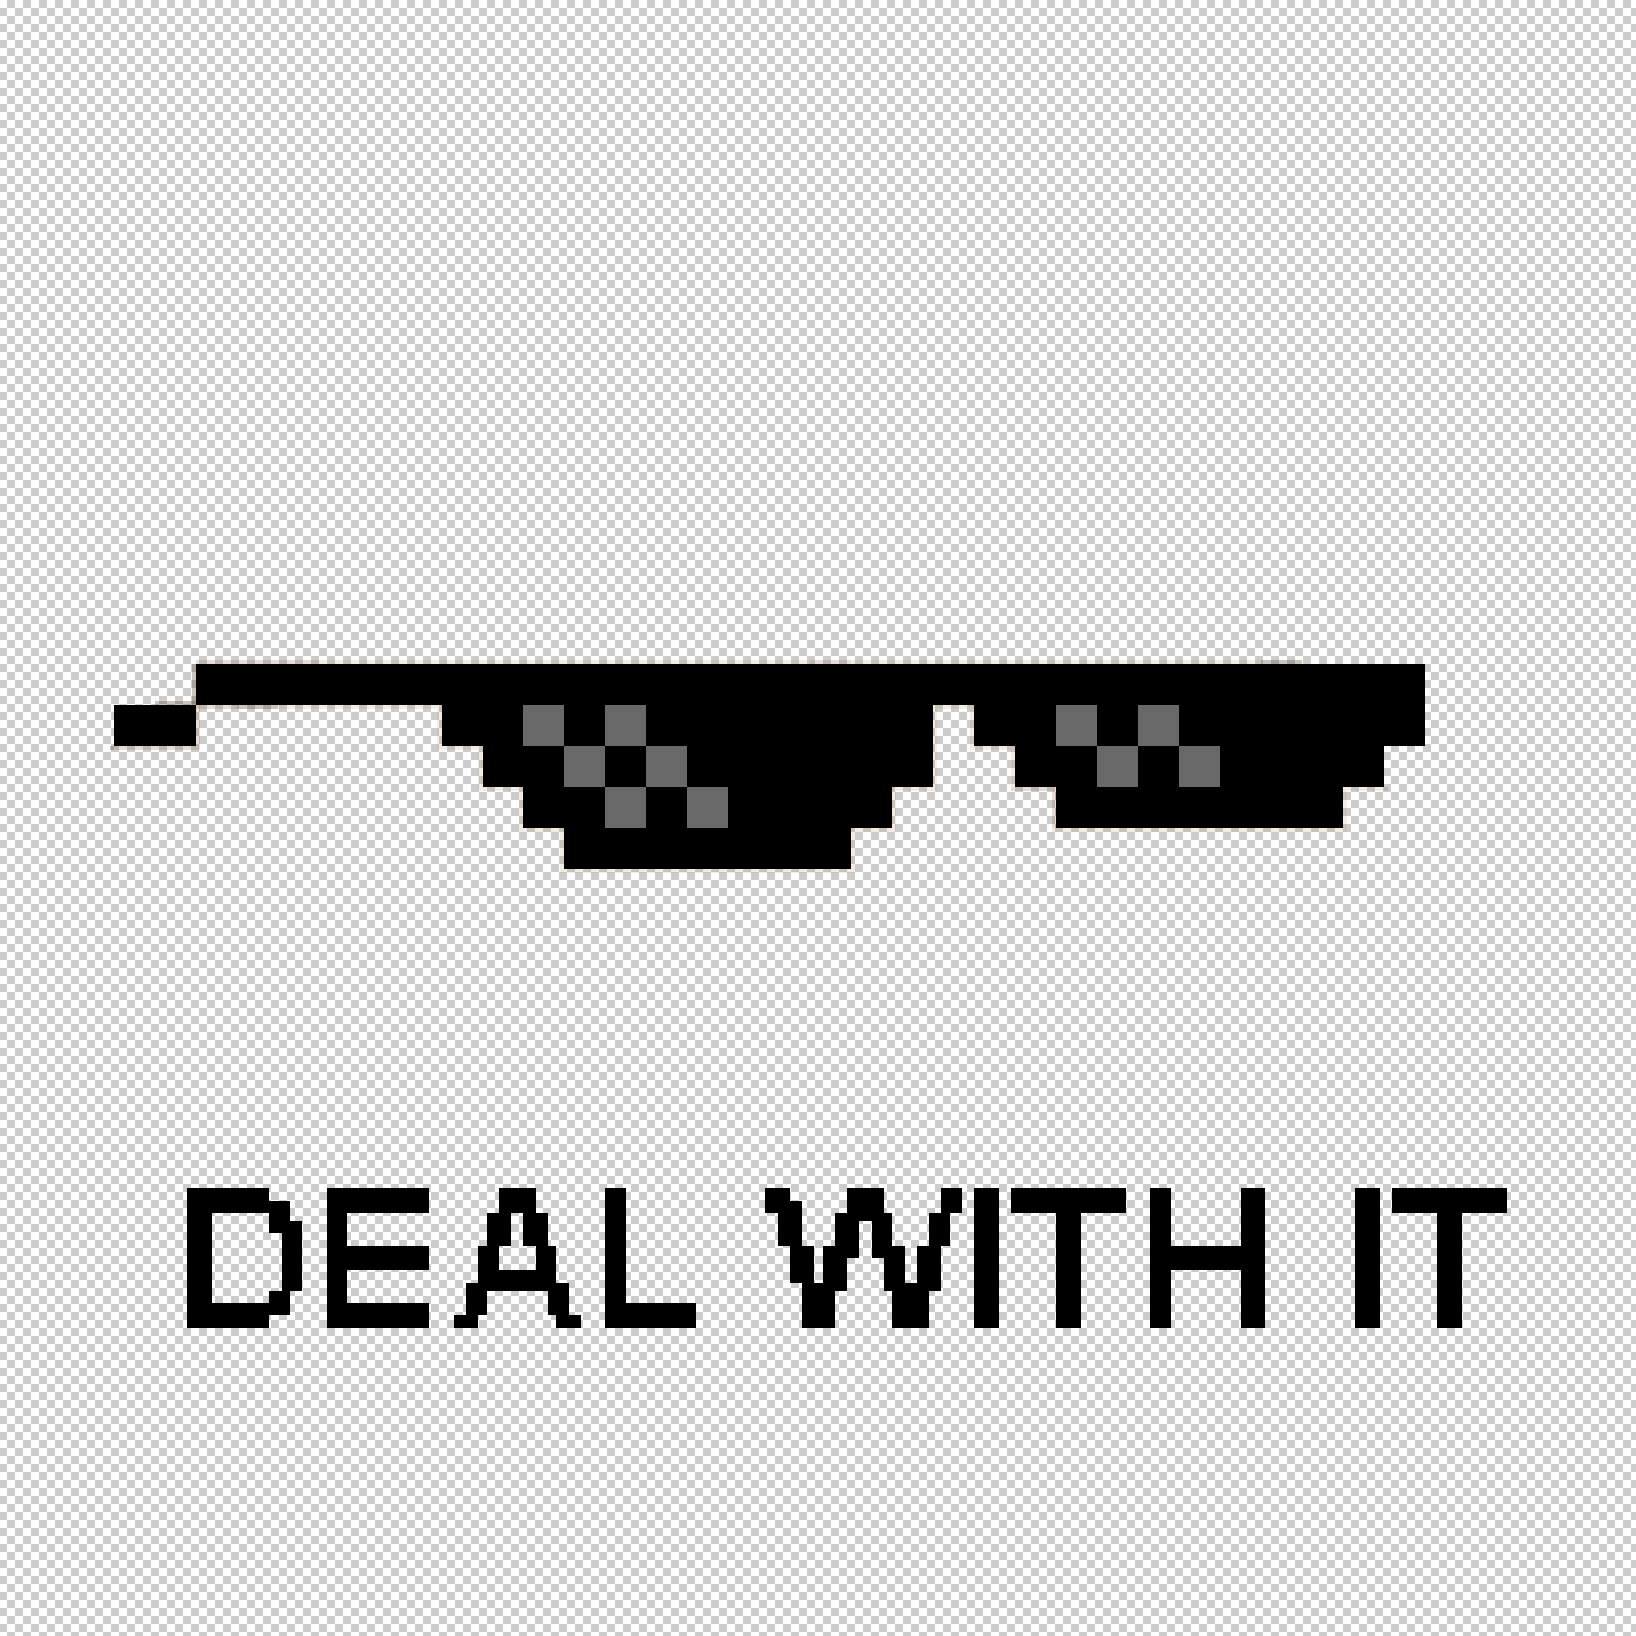 Deal with it glasses and text